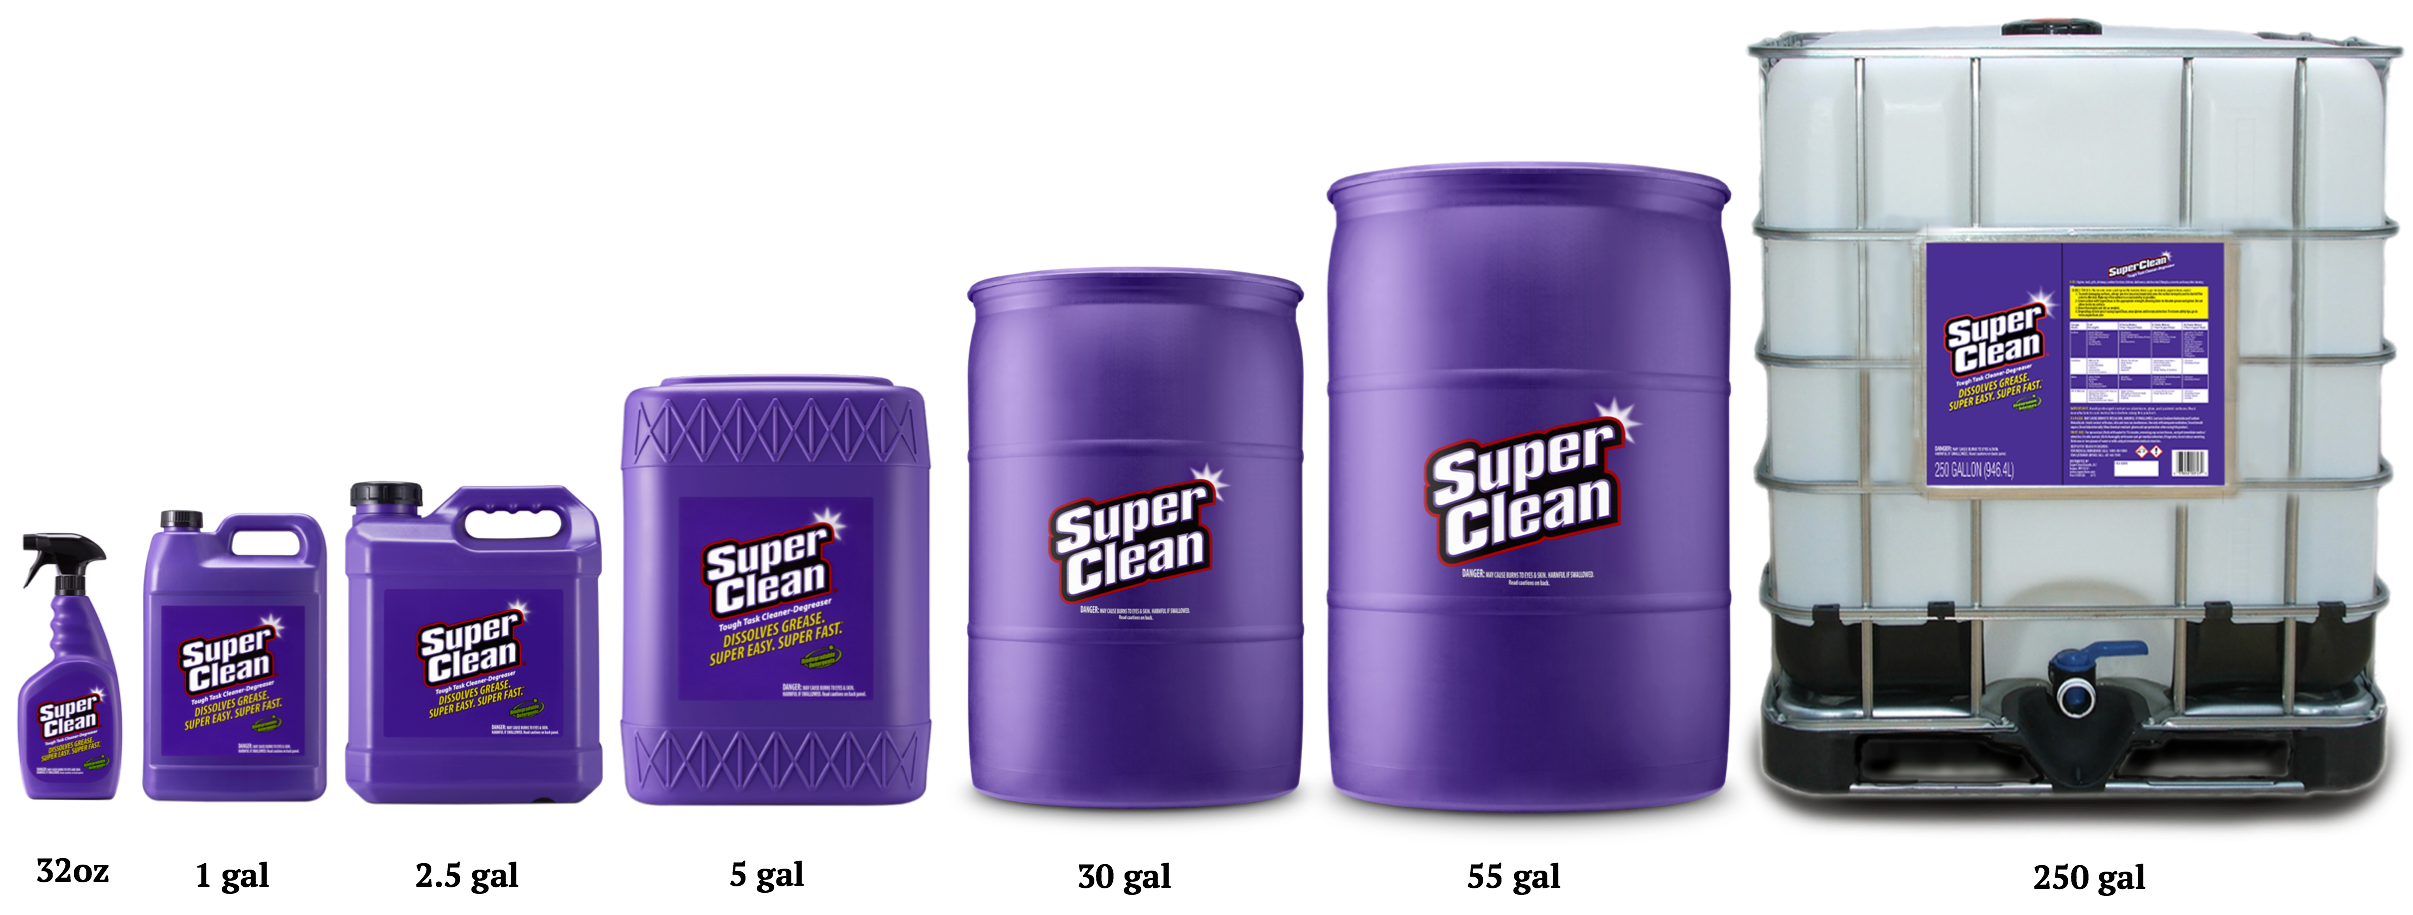 SuperClean Cleaner Degreaser in Different Sizes